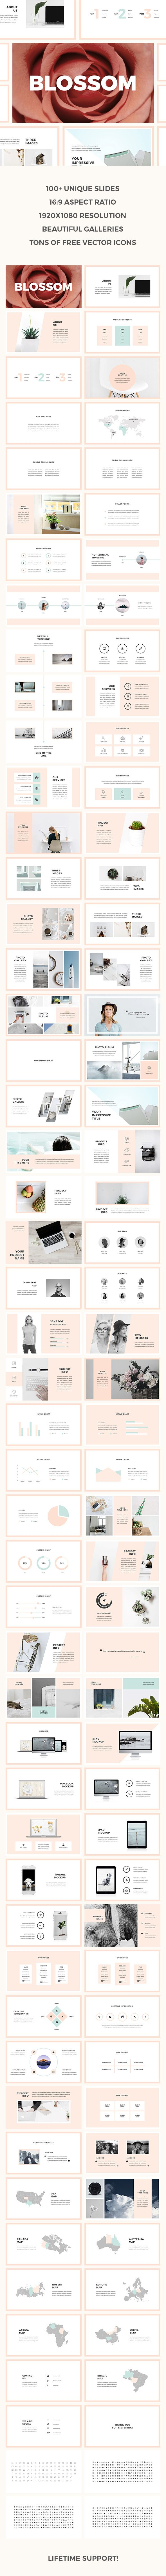 Blossom PowerPoint Template - PowerPoint Templates Presentation Templates